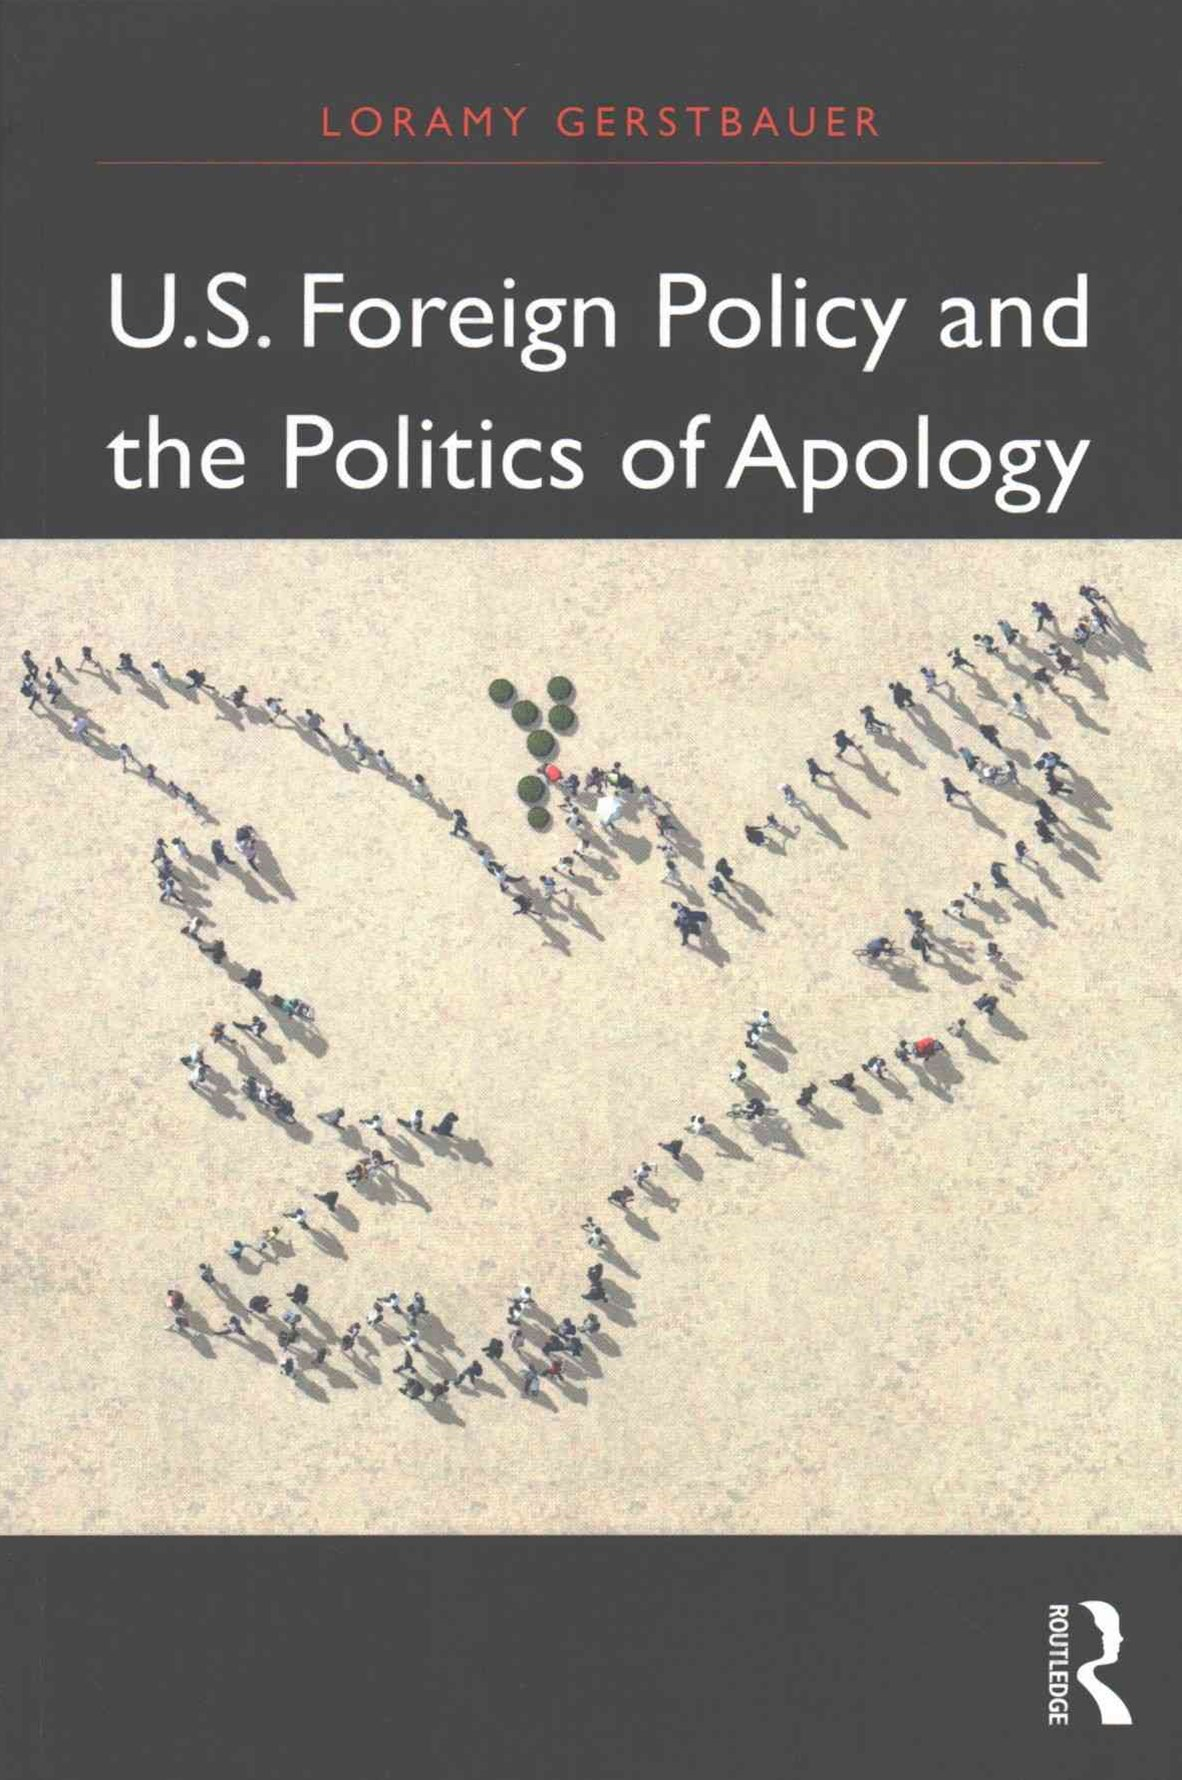 U. S. Foreign Policy and the Politics of Apology